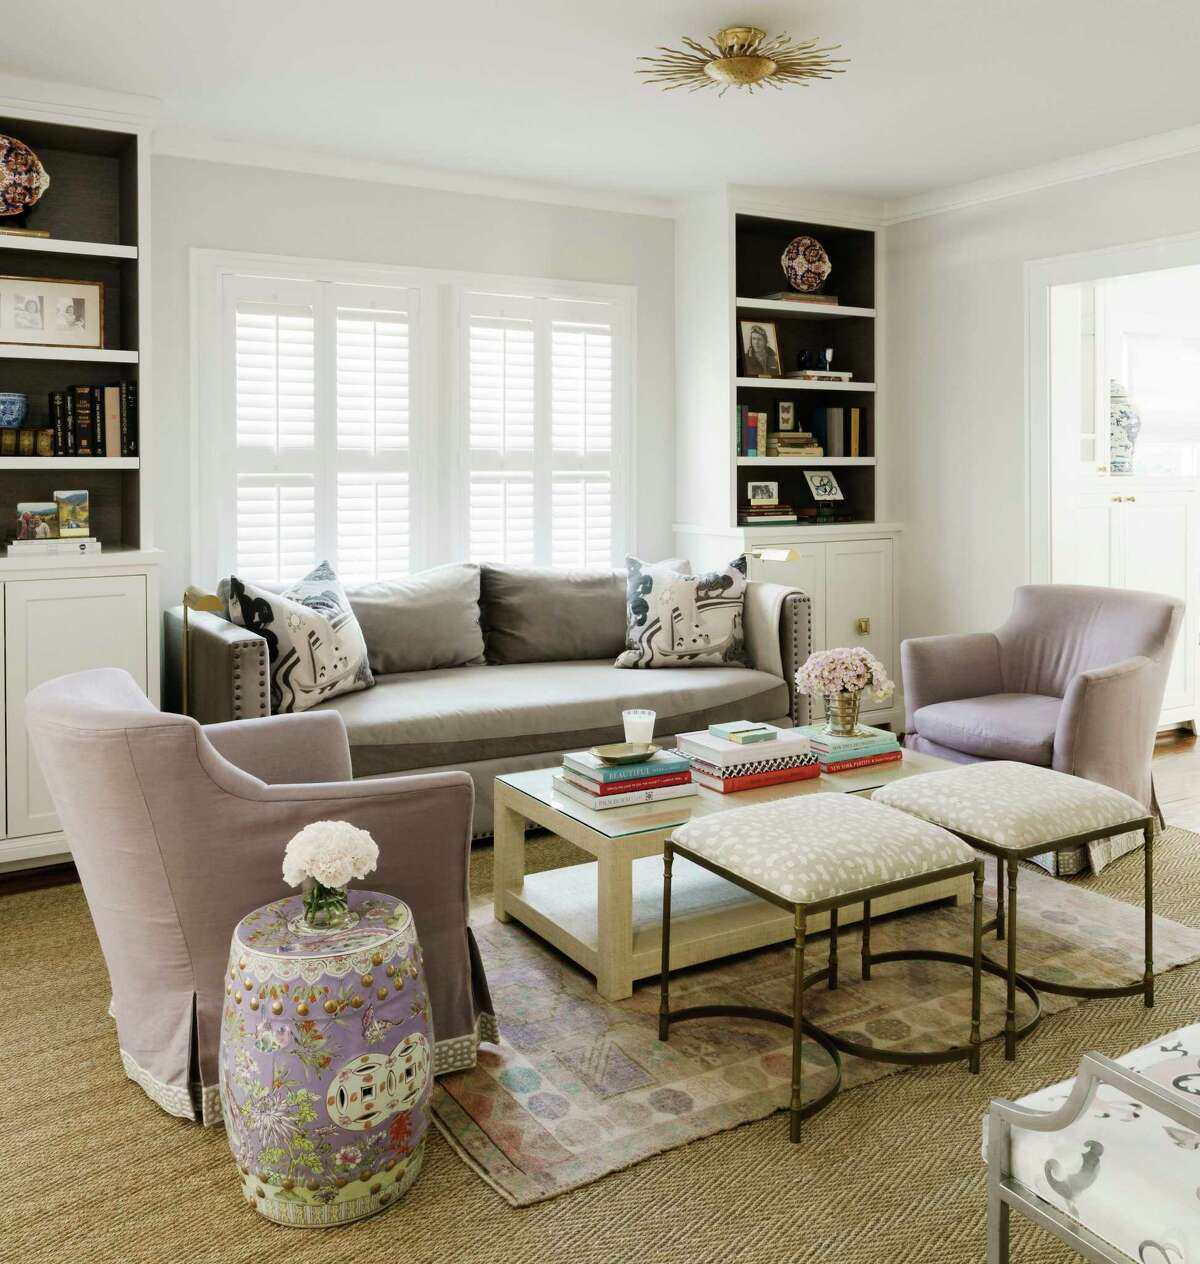 Interior designer Hallie Sims of Hallie Henley Design packed a lot into Clair Hedgcoxe's small living room: a sofa, two chairs and two stools for extra seating.